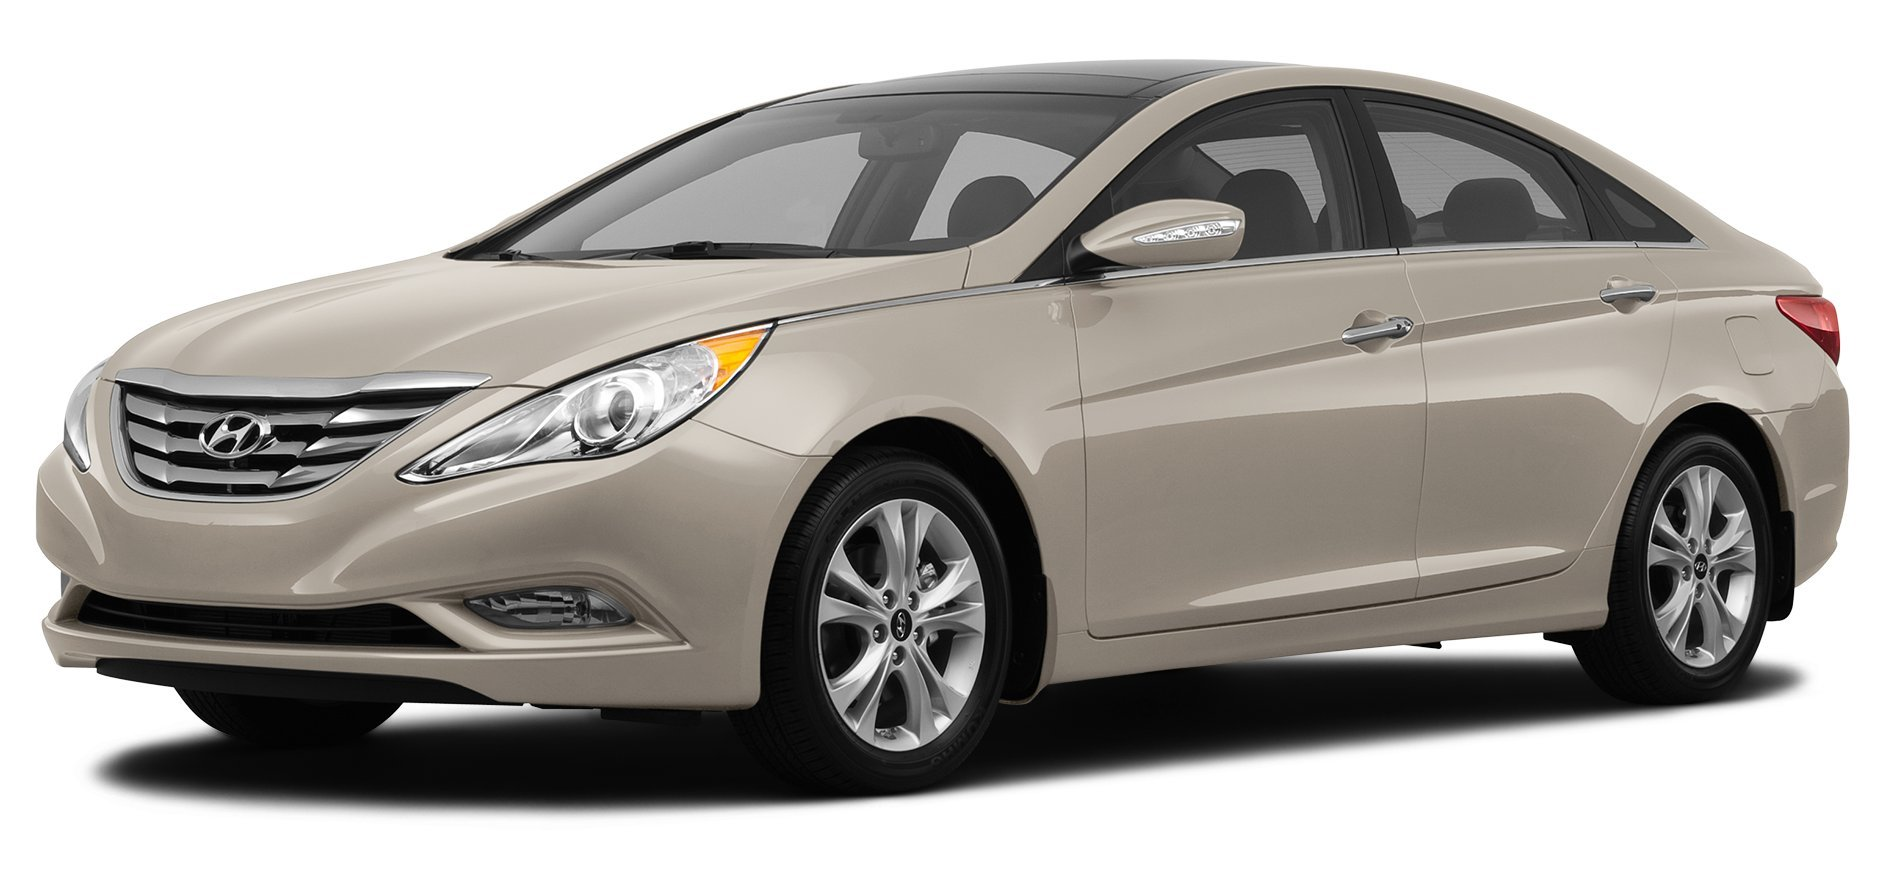 2012 hyundai sonata reviews images and specs vehicles. Black Bedroom Furniture Sets. Home Design Ideas